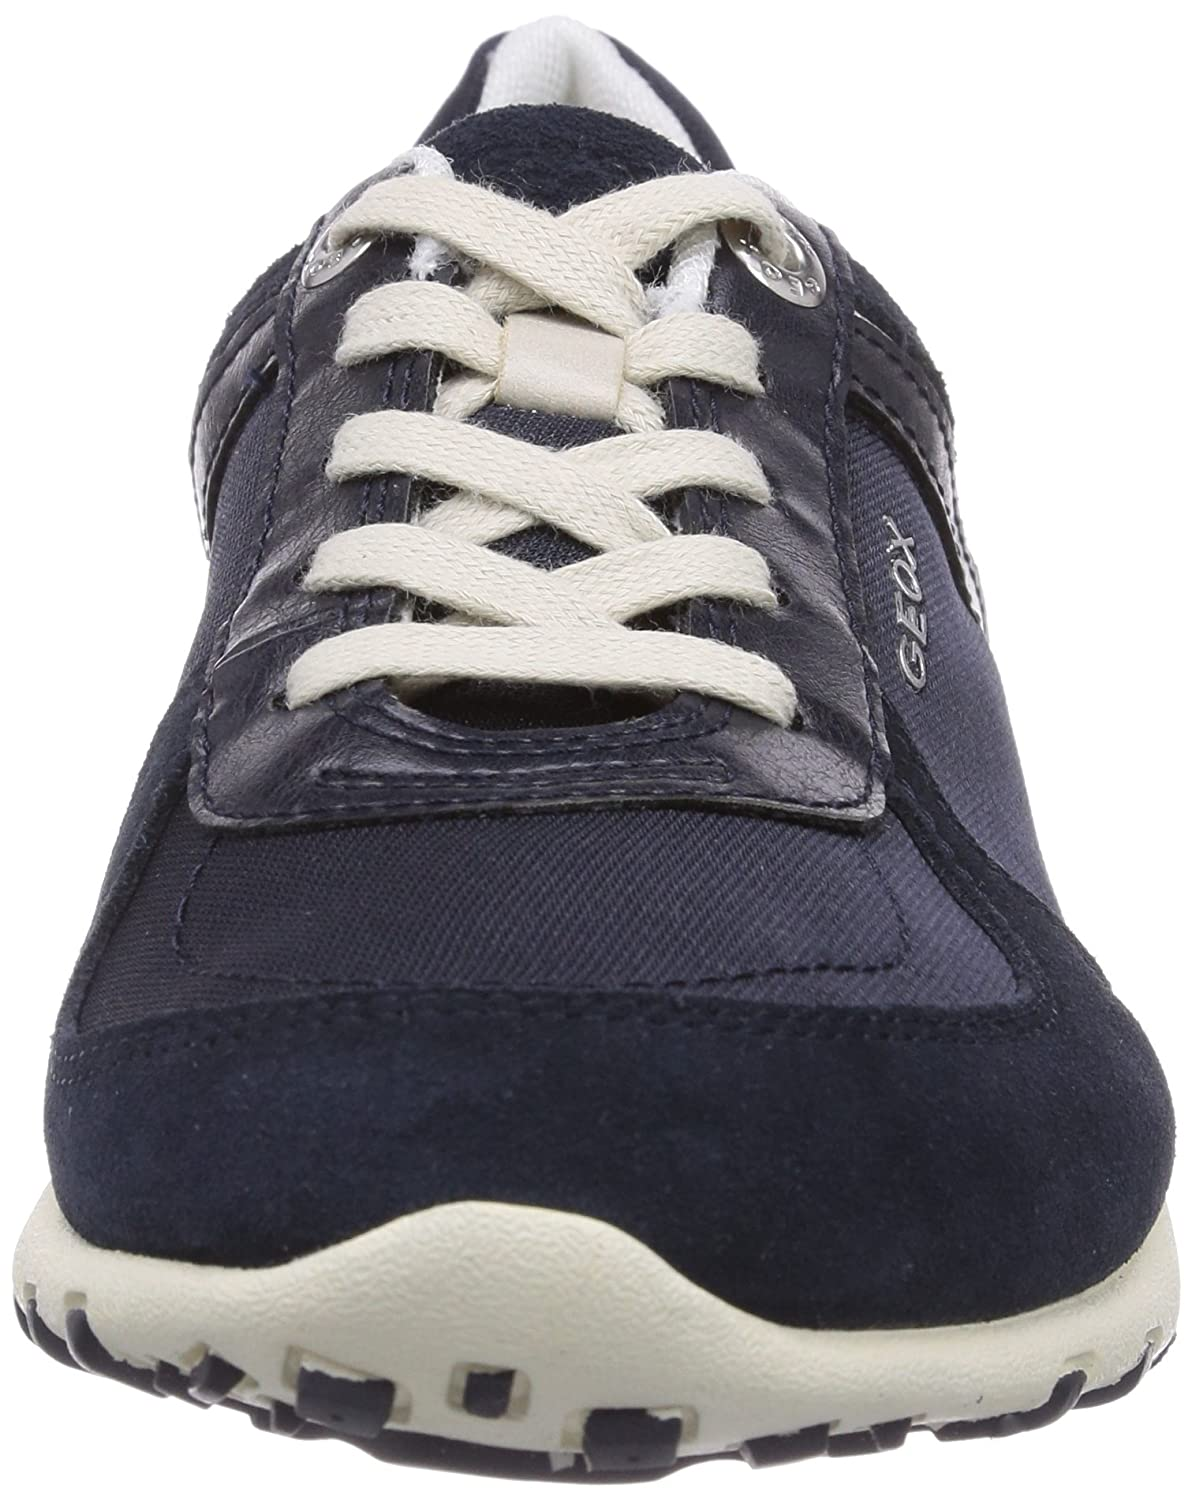 Womens D FRECCIA A Low-Top Trainer Geox wwMcto